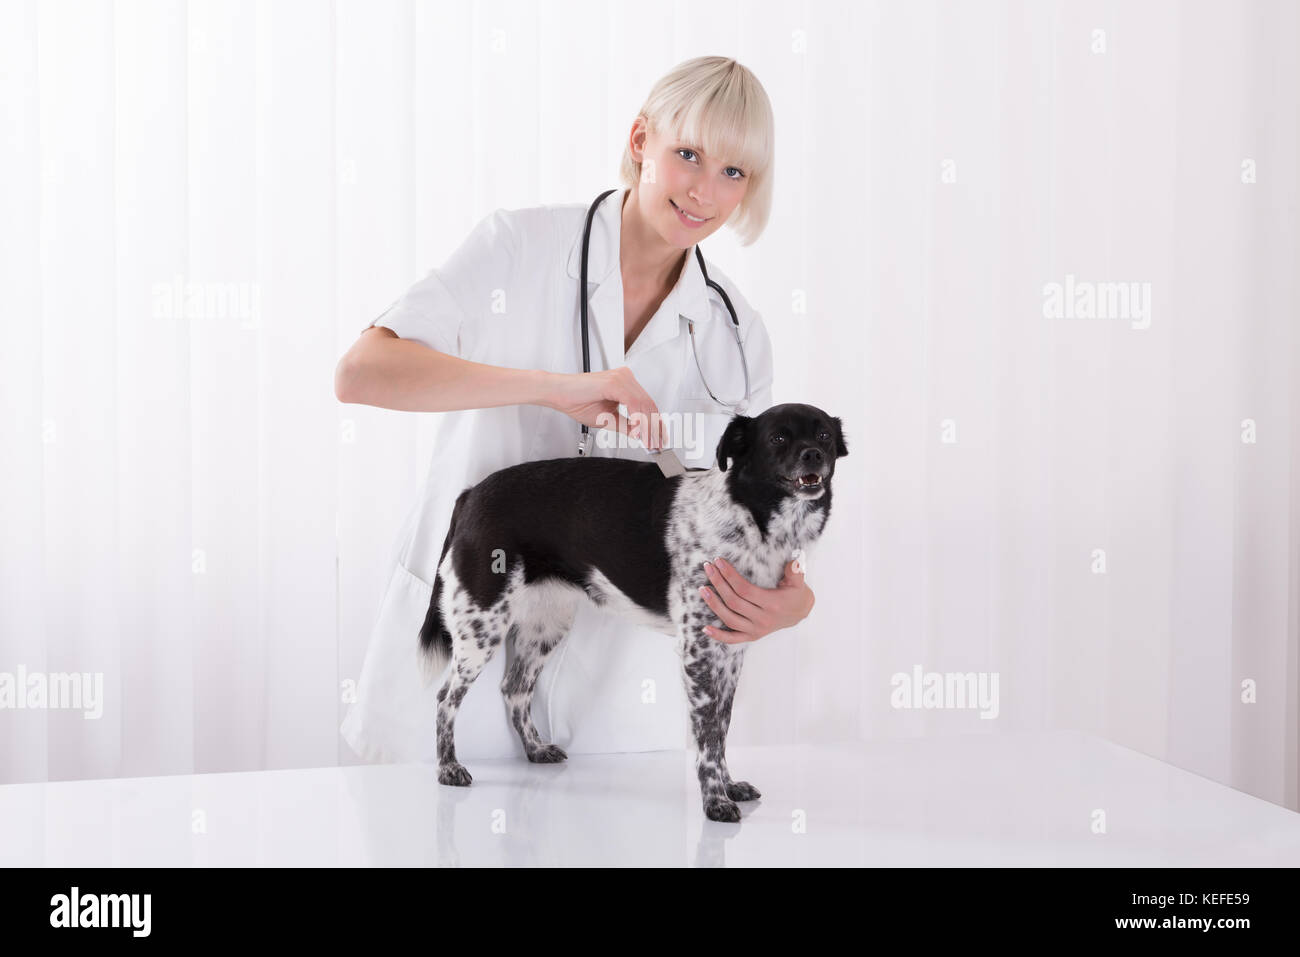 Smiling Young Female Vet Examining Dog's Hair With Comb In Clinic - Stock Image